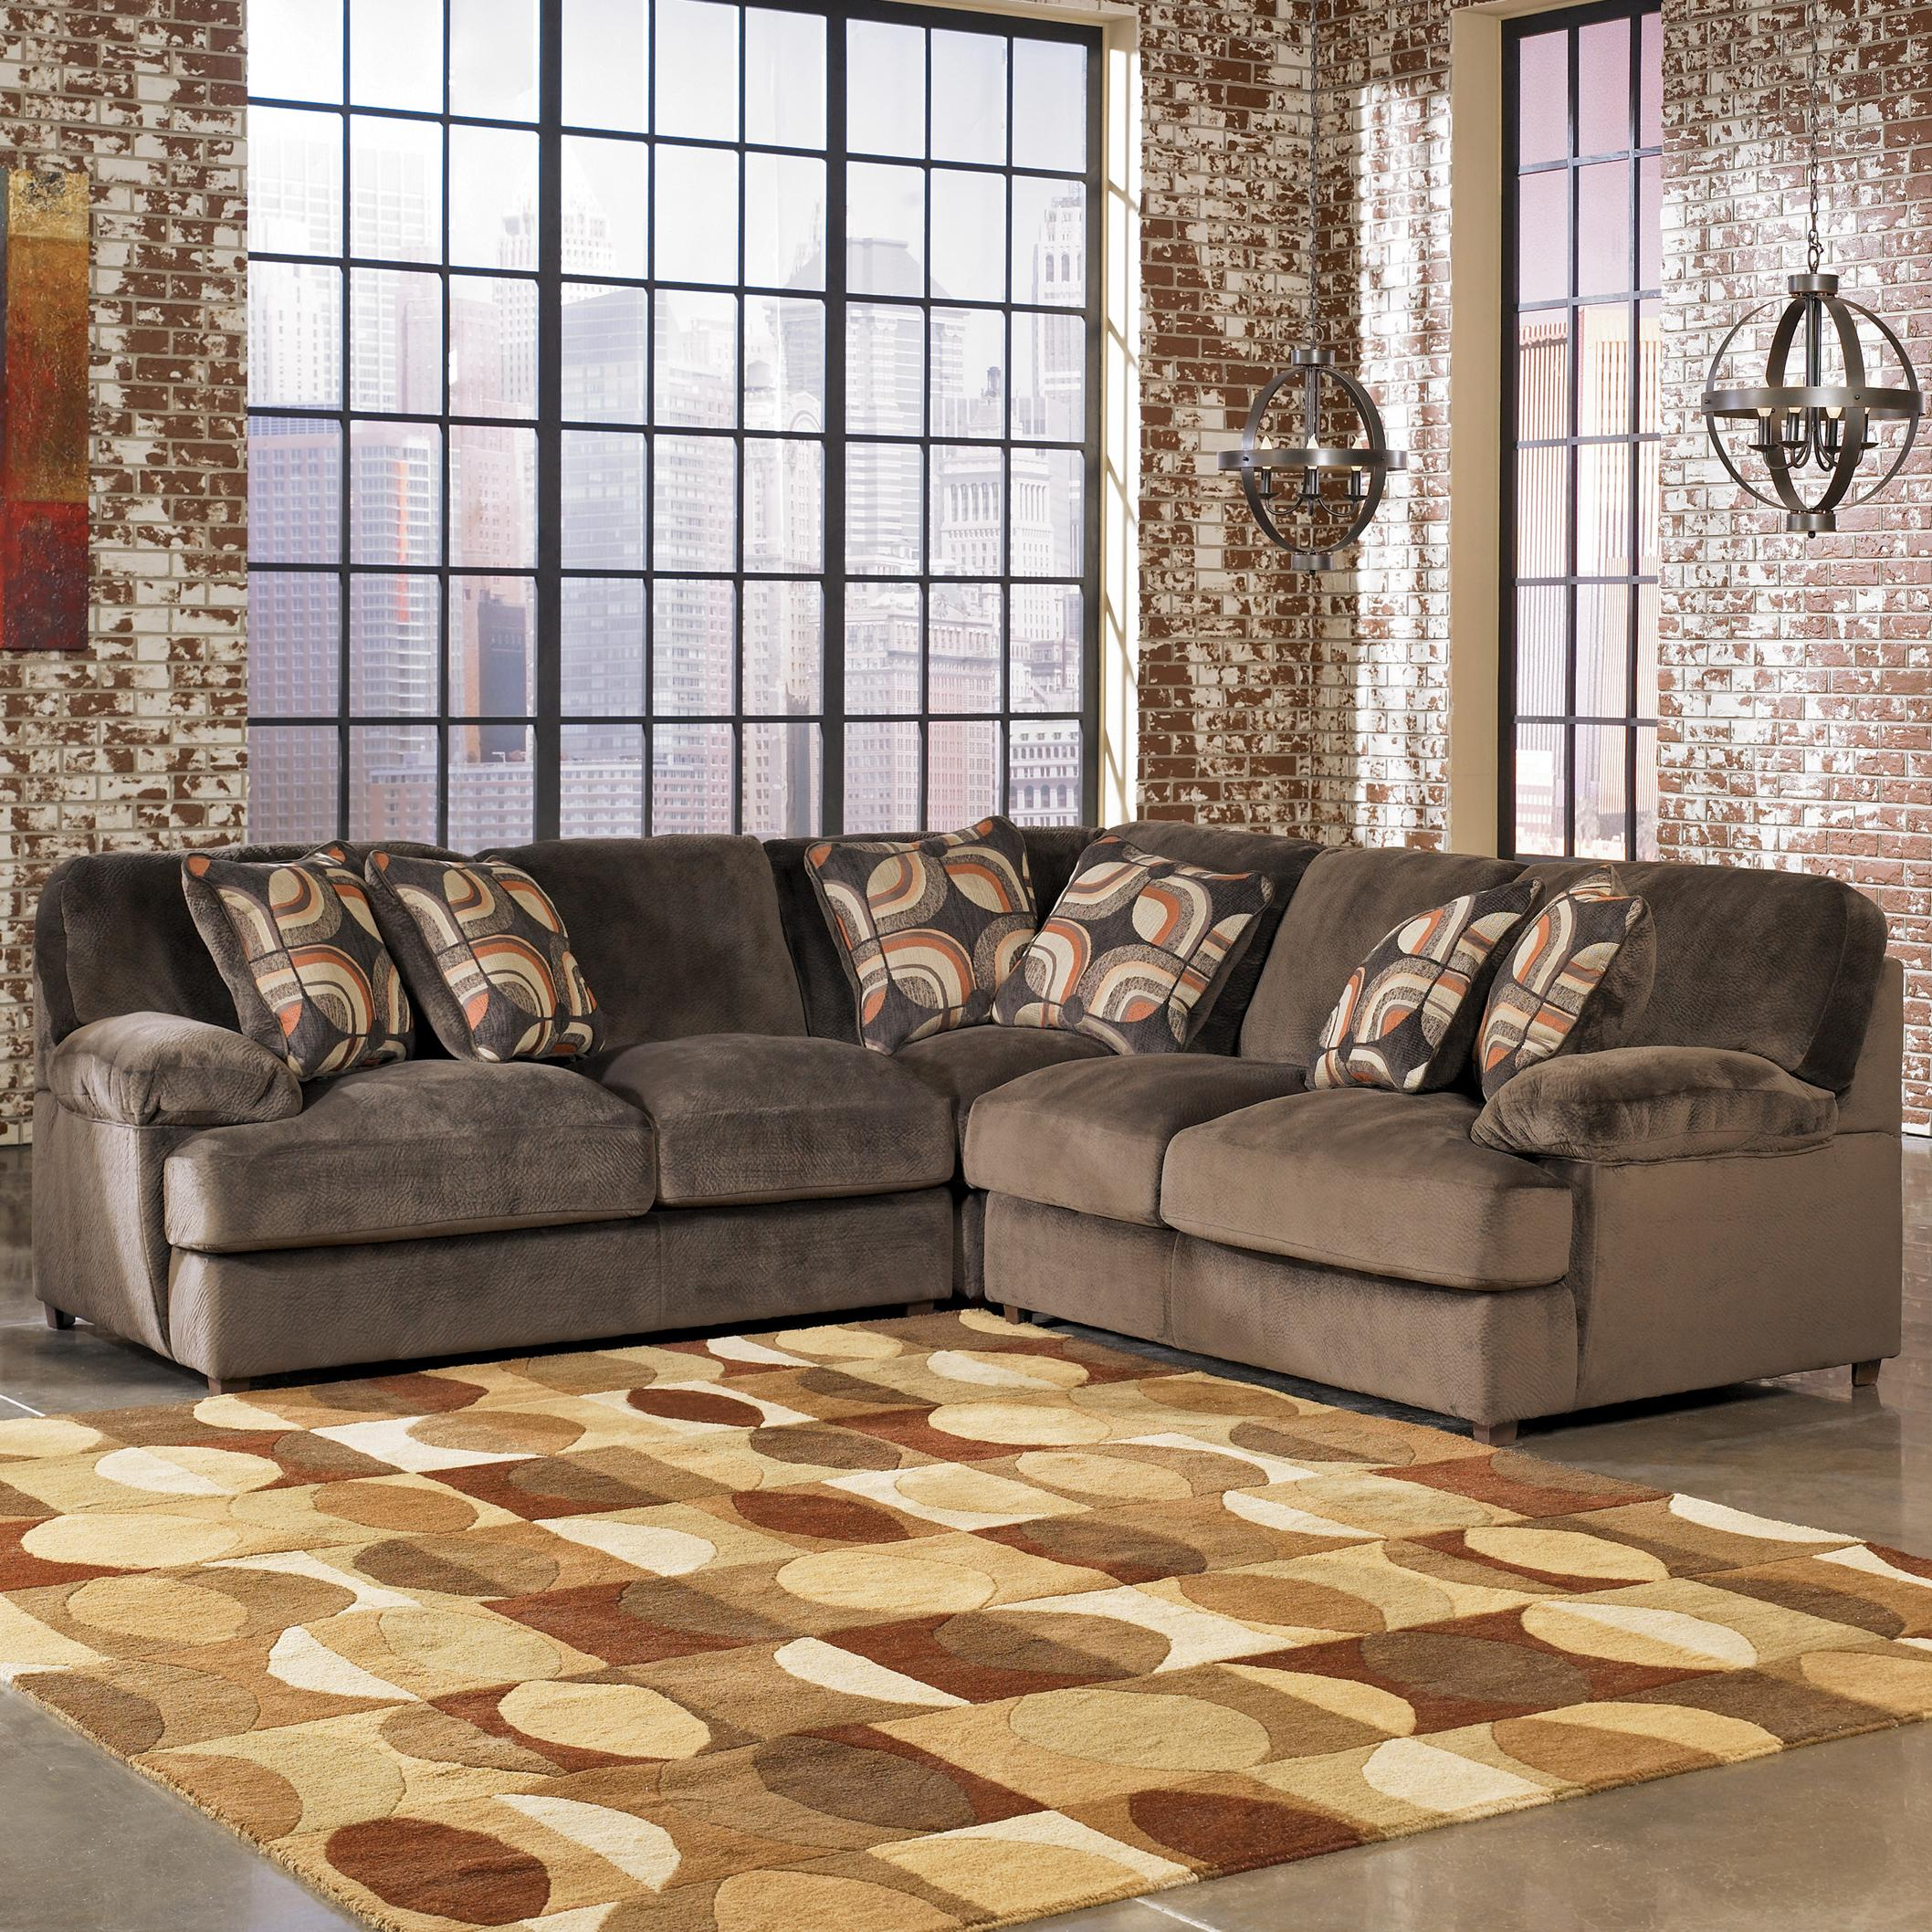 Truscotti Cafe Contemporary 3 Piece Sectional With Two Love Seats By Signature Design Ashley